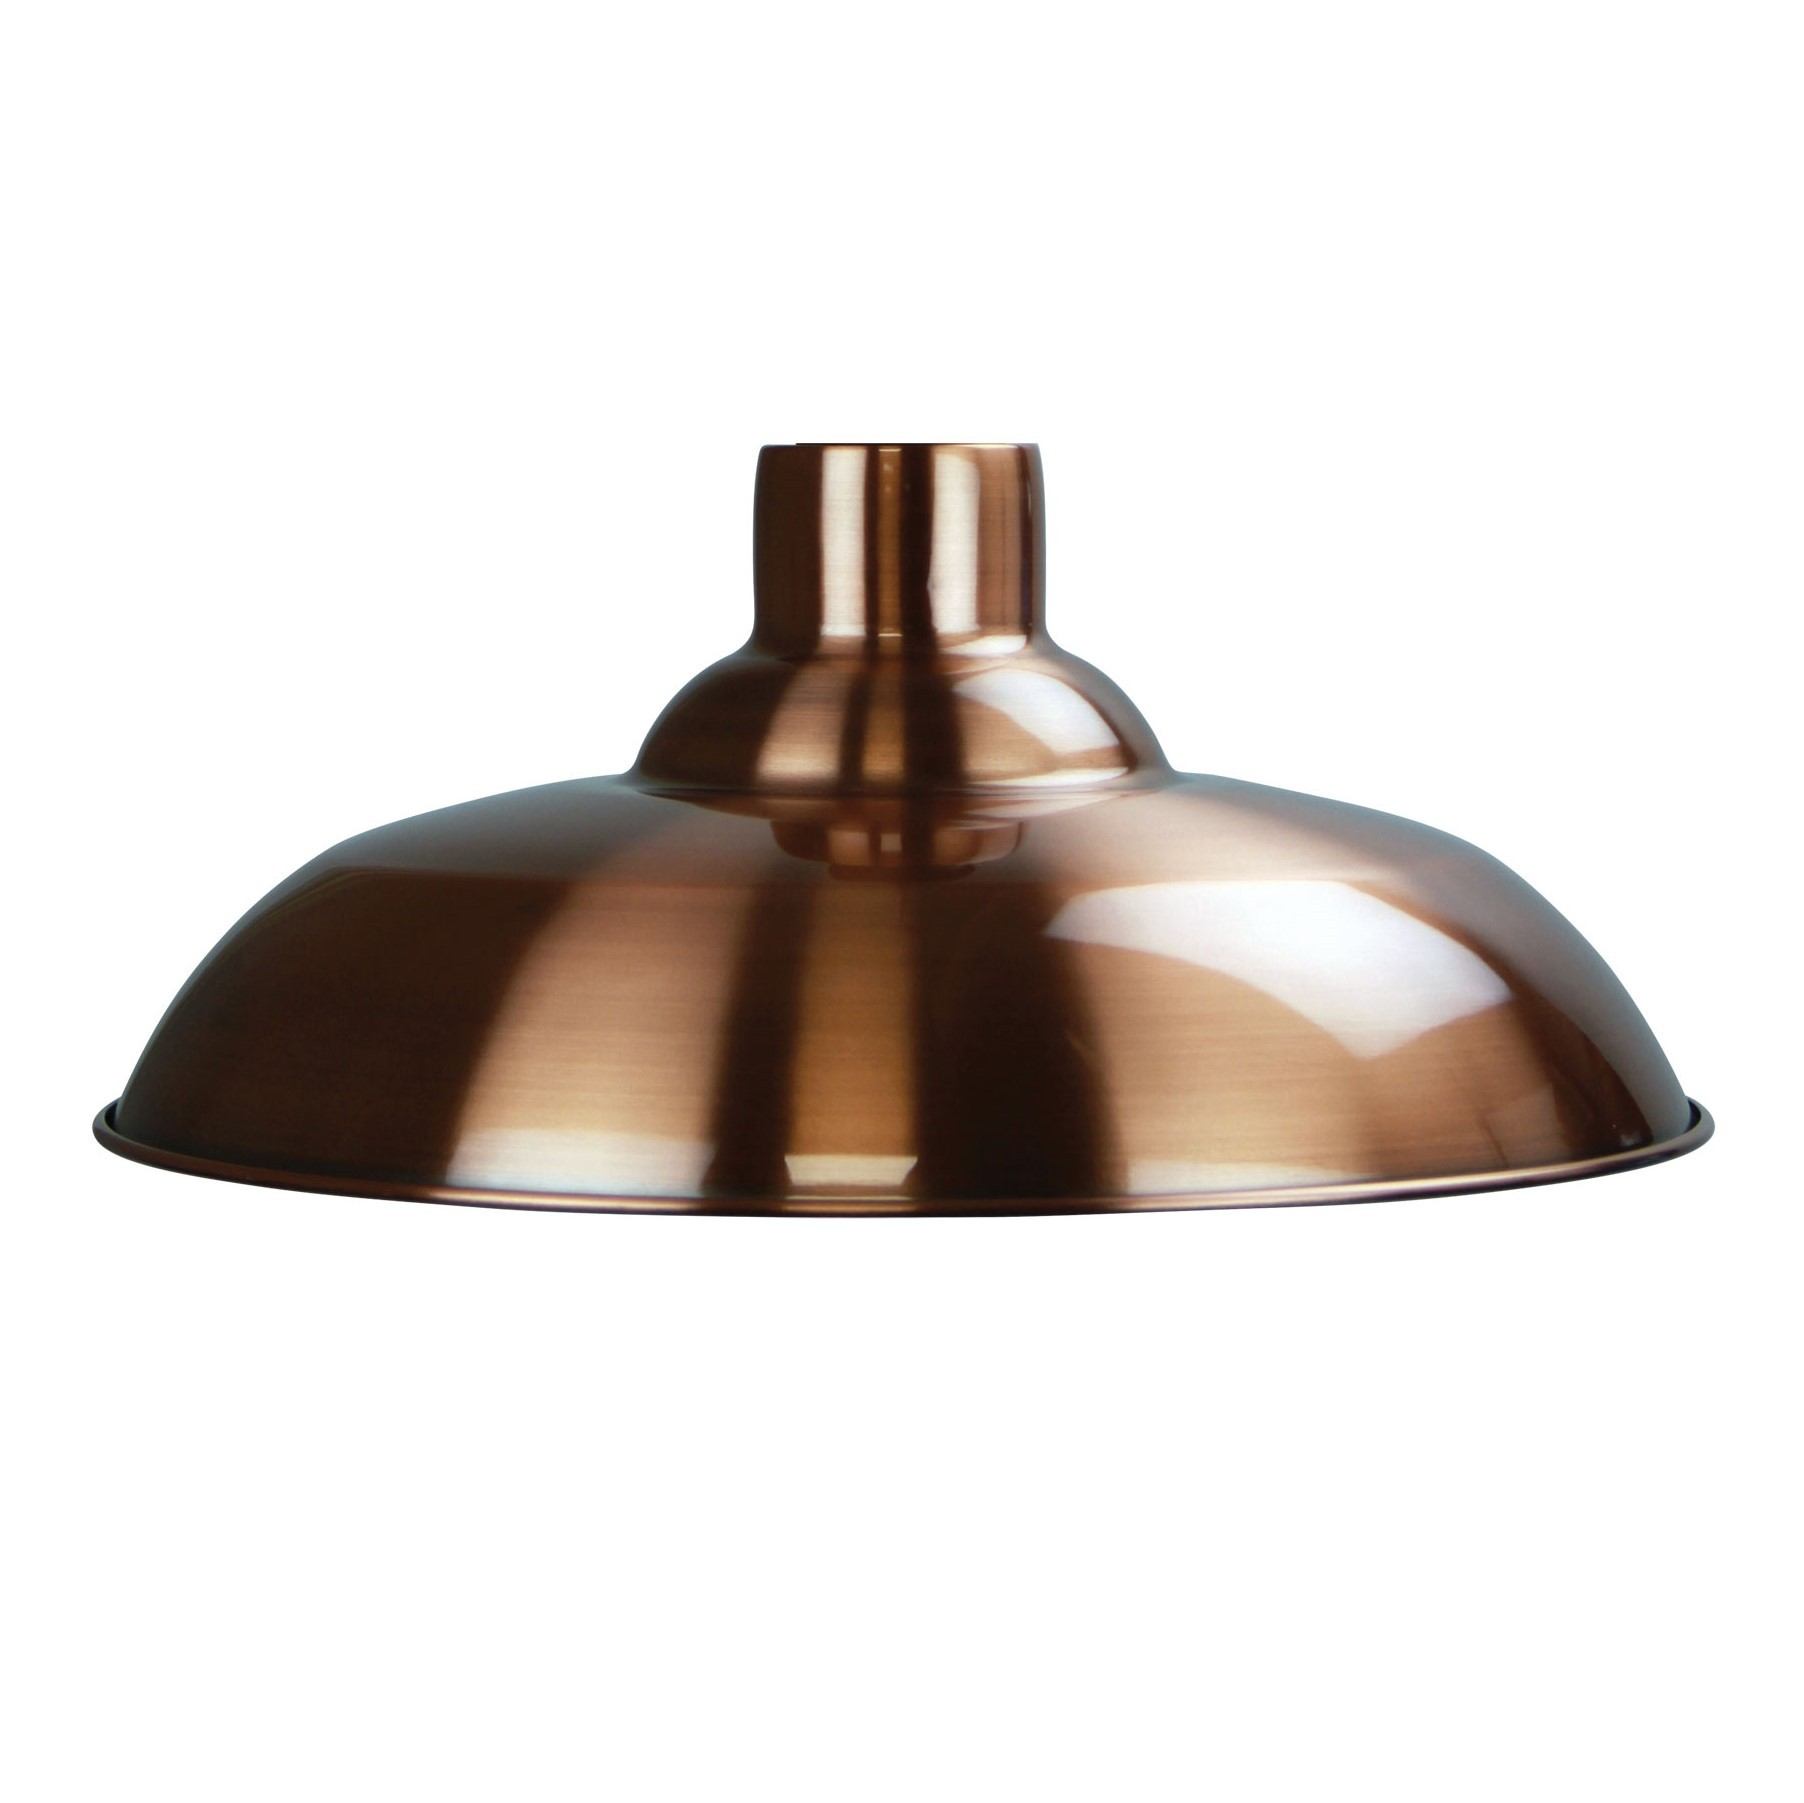 Slater Metal Pendant Light Shade, Brushed Copper